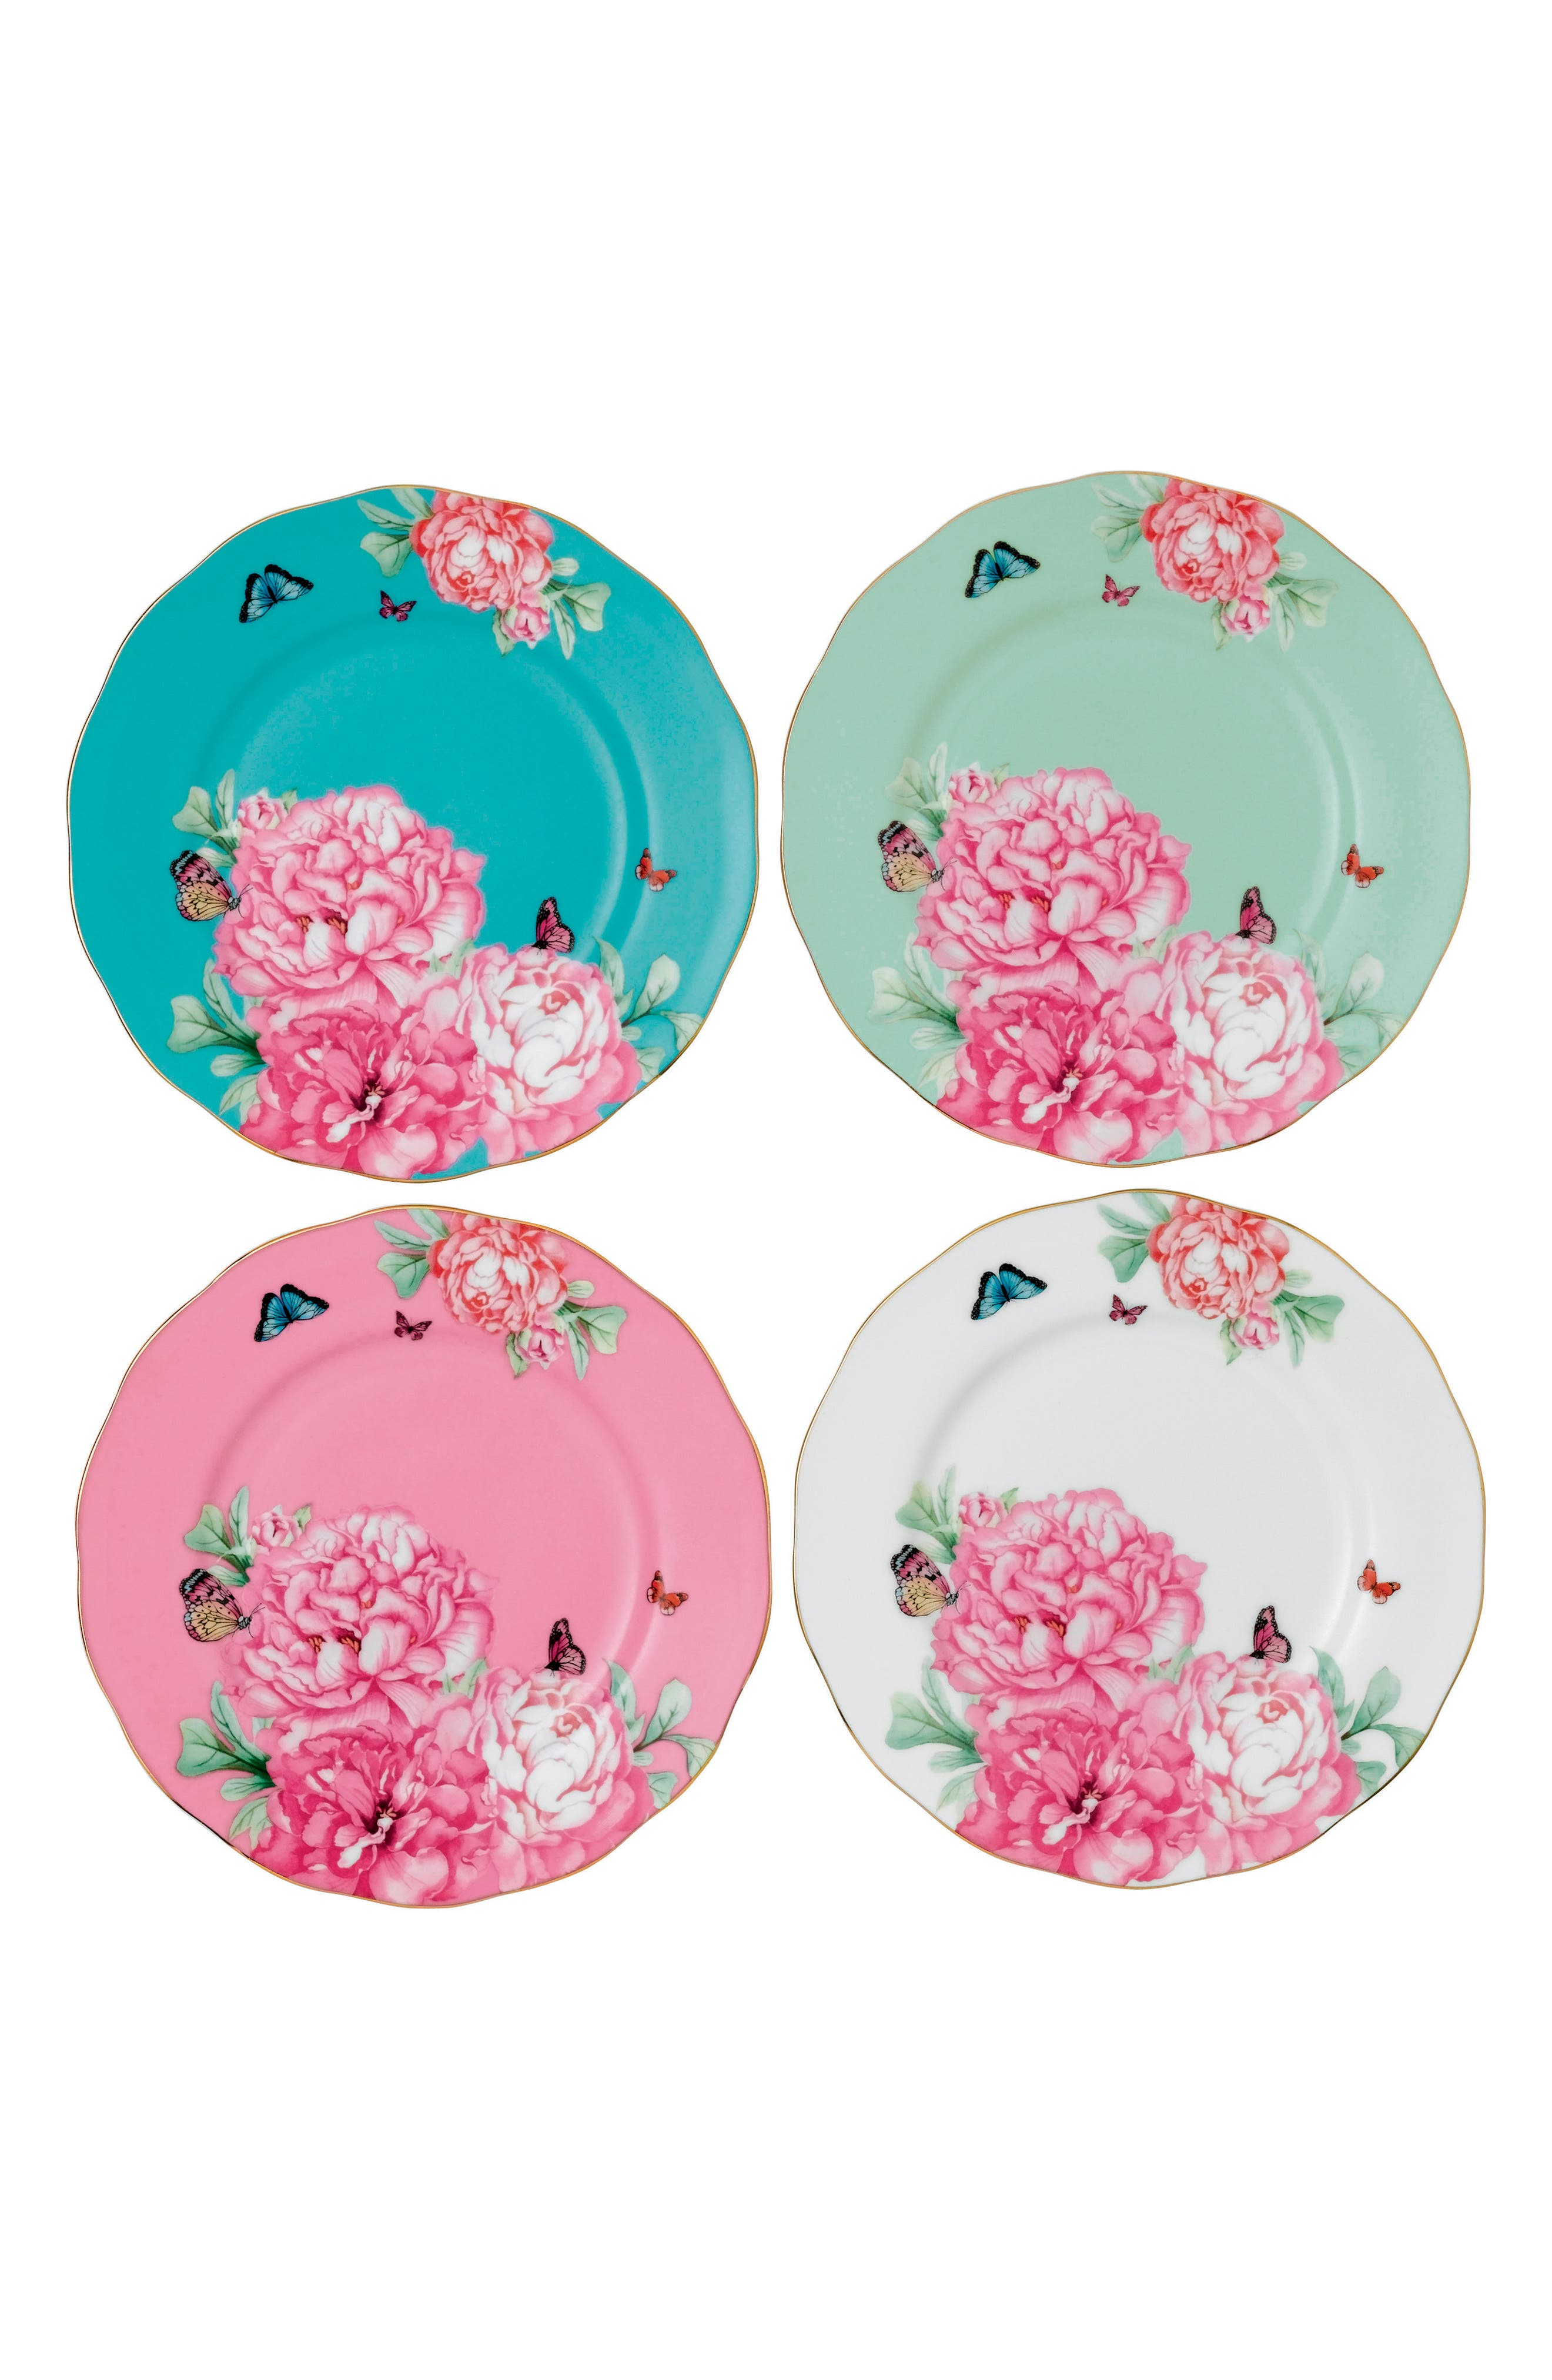 Main Image - Miranda Kerr for Royal Albert Friendship Set of 4 Accent Plates